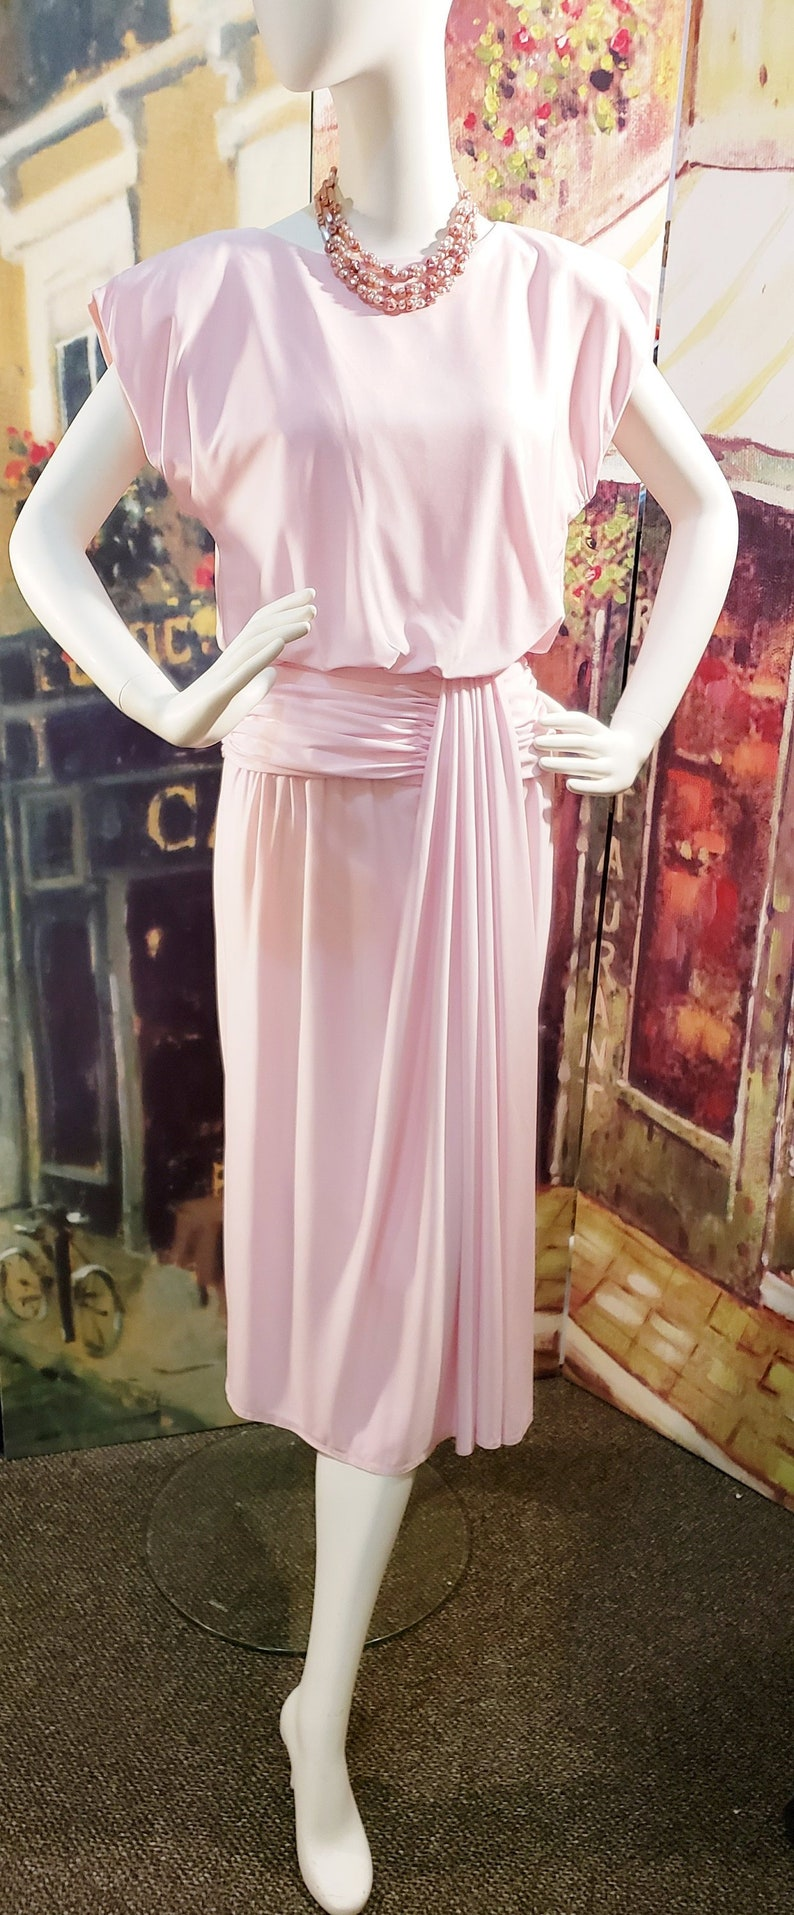 500 Vintage Style Dresses for Sale | Vintage Inspired Dresses PRETTY in PINK 1940s Style Dress SophisticatedLaRue $68.00 AT vintagedancer.com